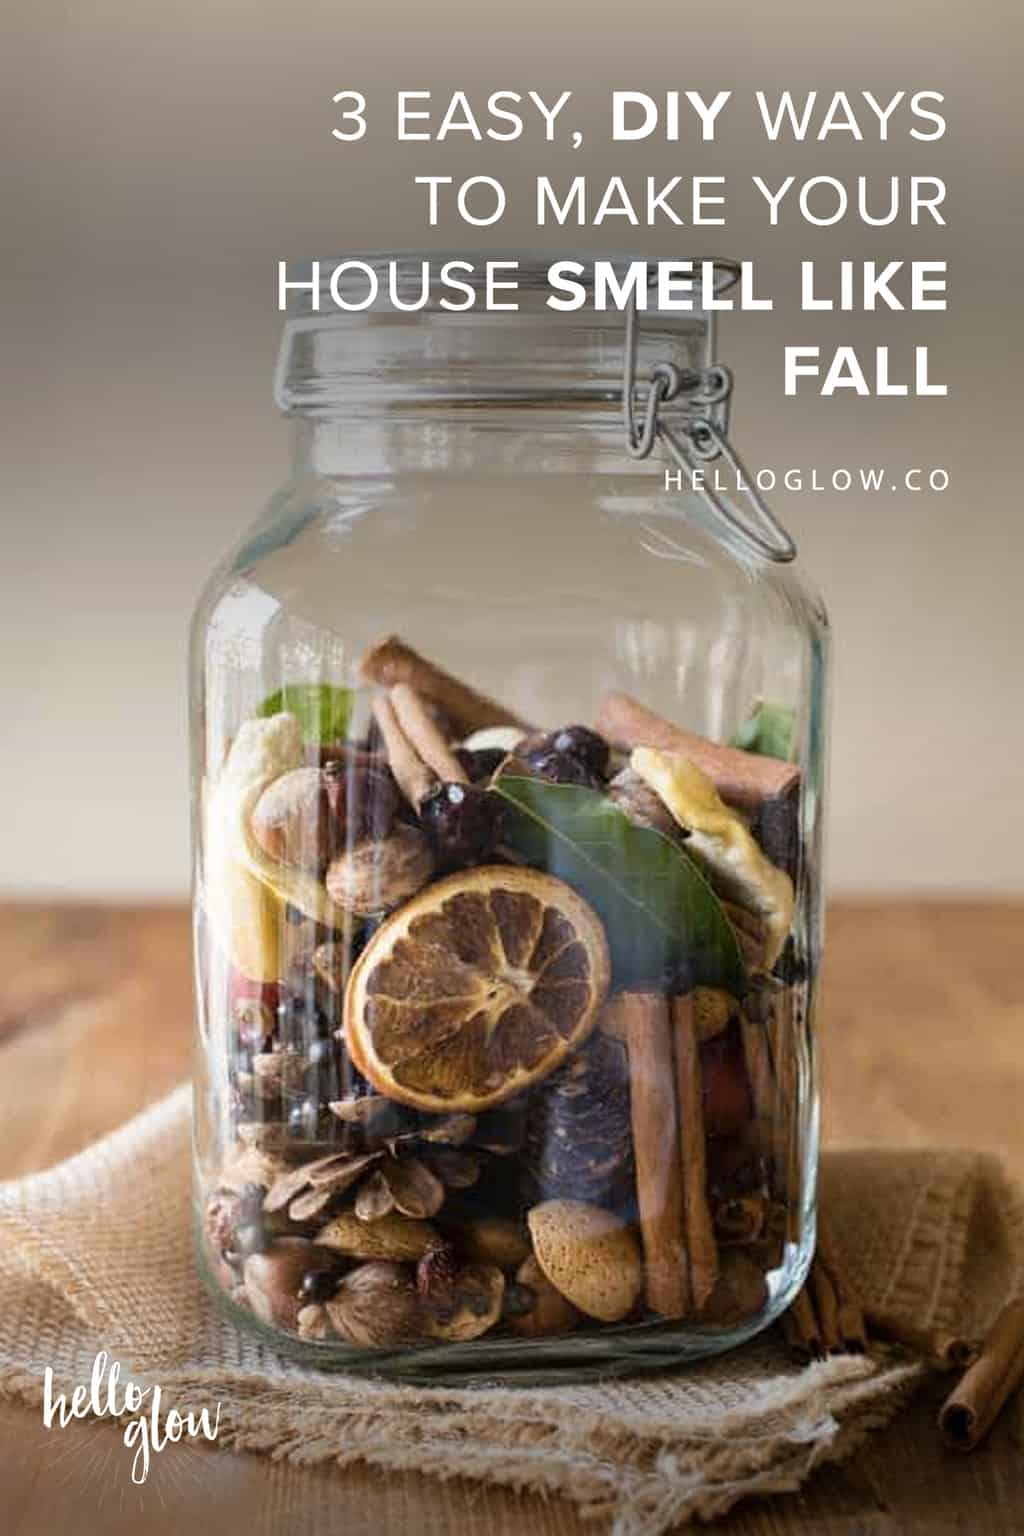 3 Easy, DIY Ways to Make Your House Smell Like Fall - Hello Glow